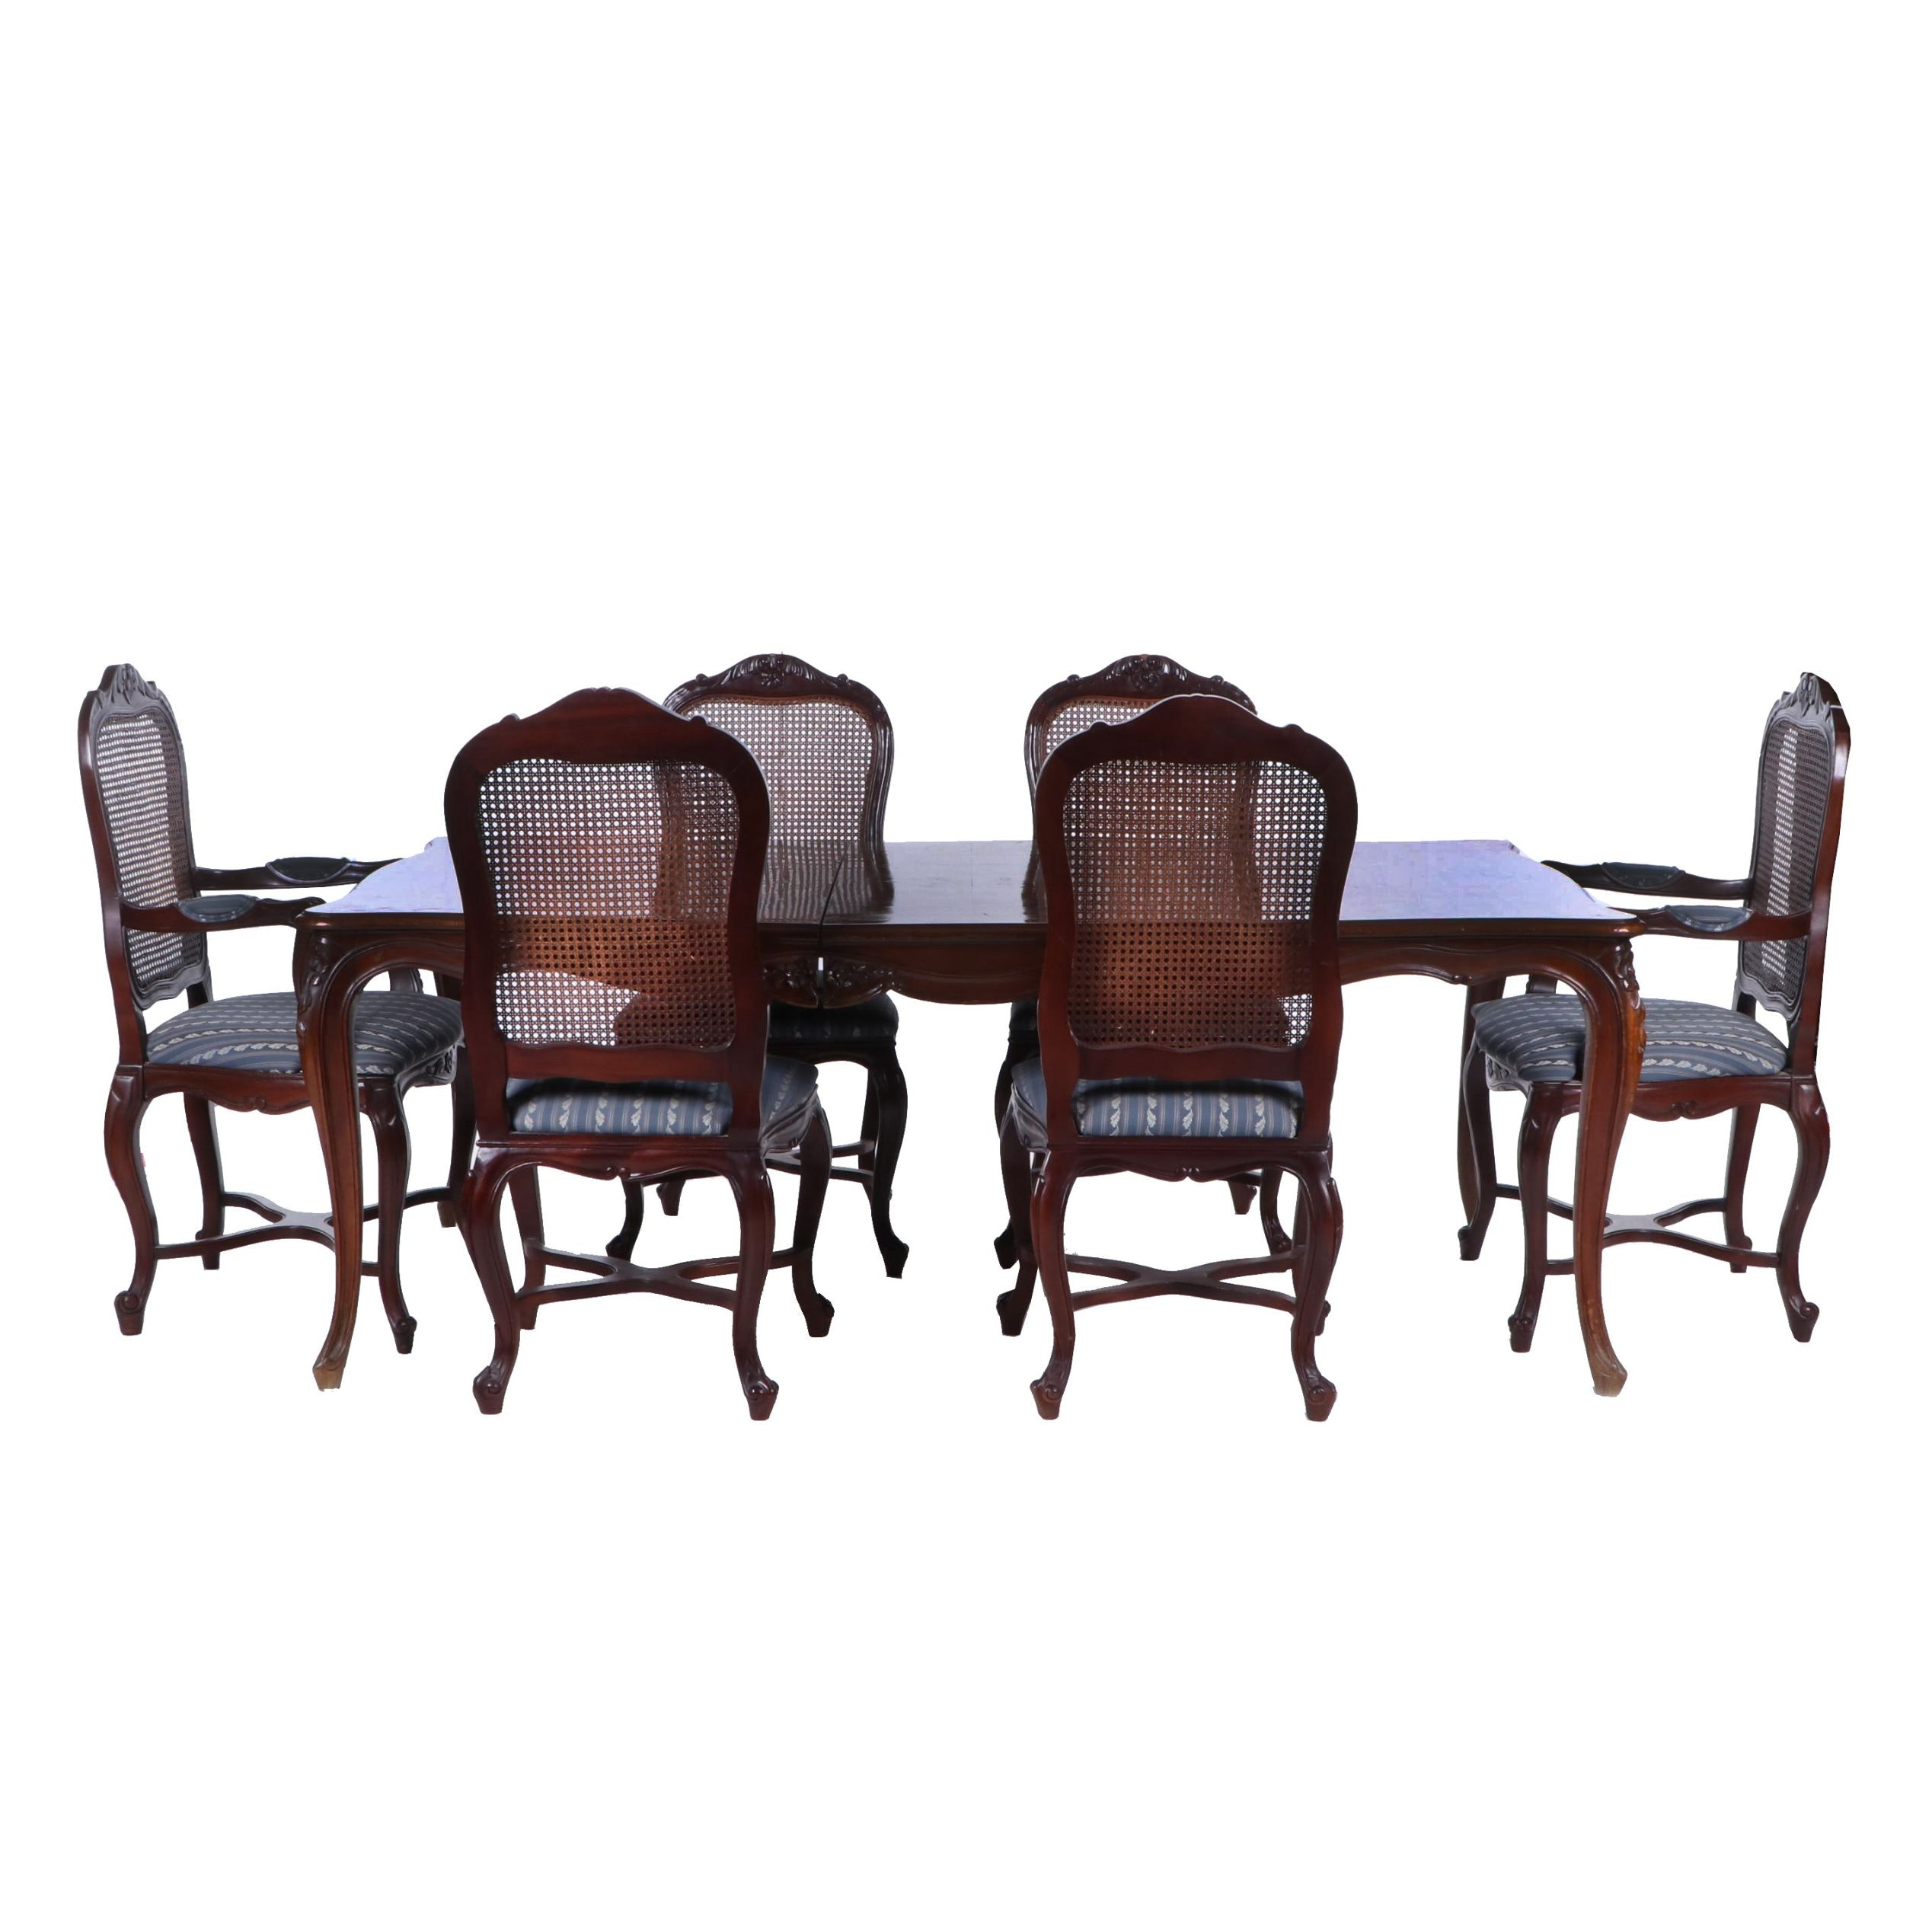 French Provincial Style Walnut Dining Table and Six Chairs, Late 20th Century